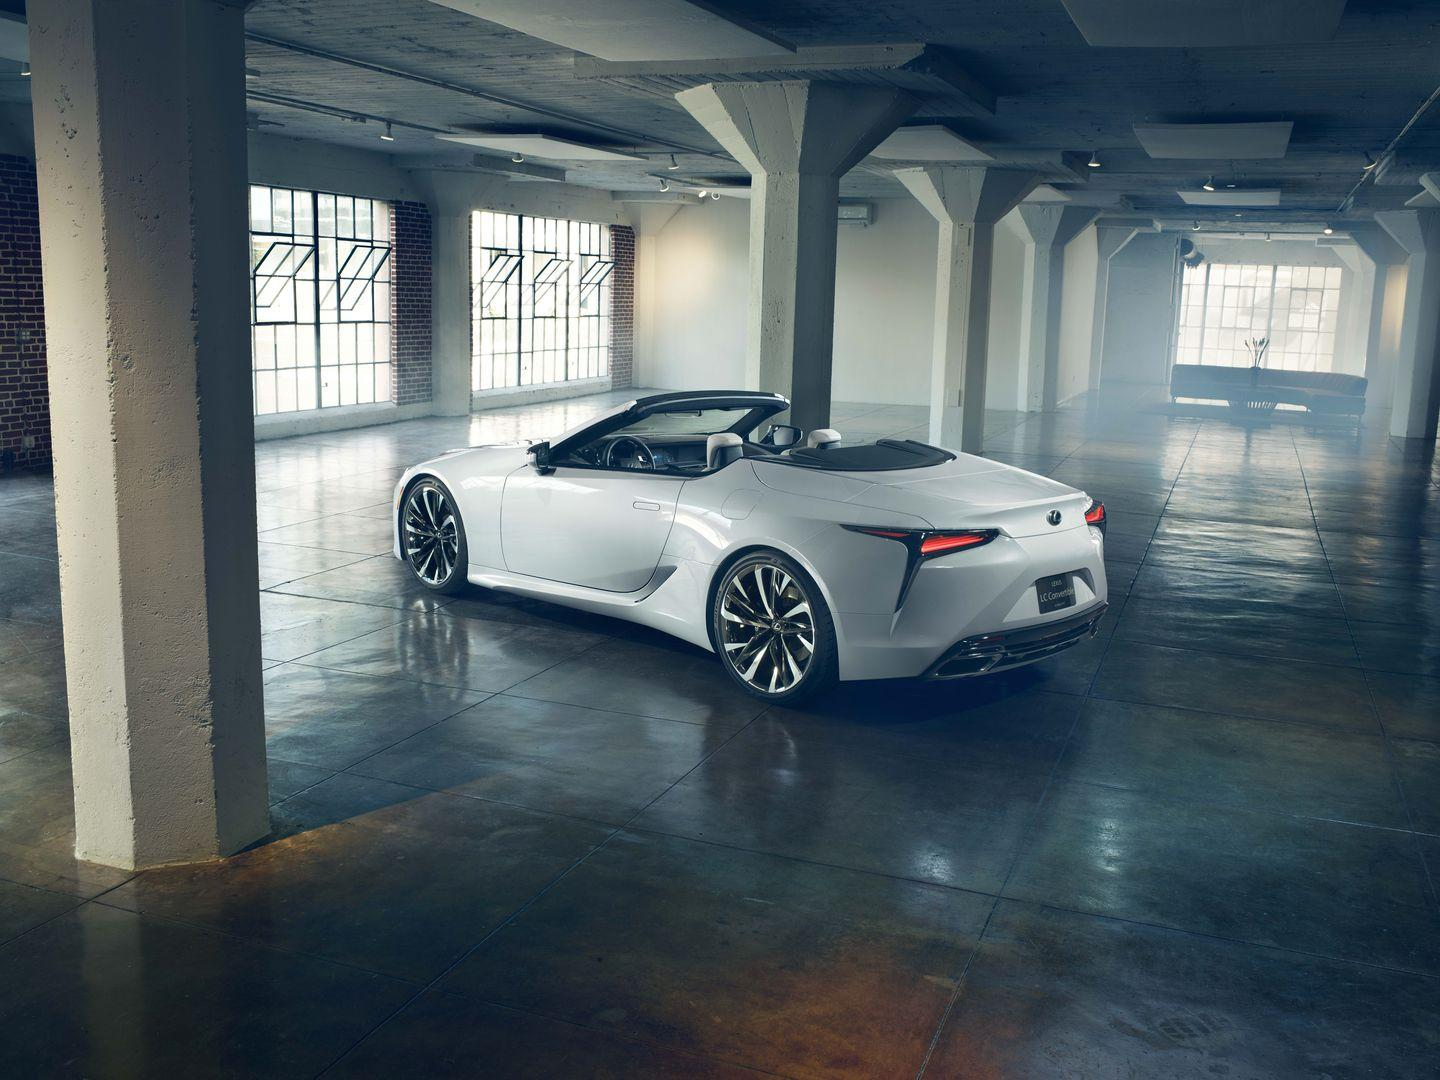 """<p>Even though the convertible's rear deck appears much longer than the coupe's stubby piece, the style works and is much better negotiated than the rear on its would-be competitor, <a href=""""https://www.caranddriver.com/mercedes-benz/sl-class"""" rel=""""nofollow noopener"""" target=""""_blank"""" data-ylk=""""slk:the Mercedes-Benz SL-class"""" class=""""link rapid-noclick-resp"""">the Mercedes-Benz SL-class</a>.</p>"""